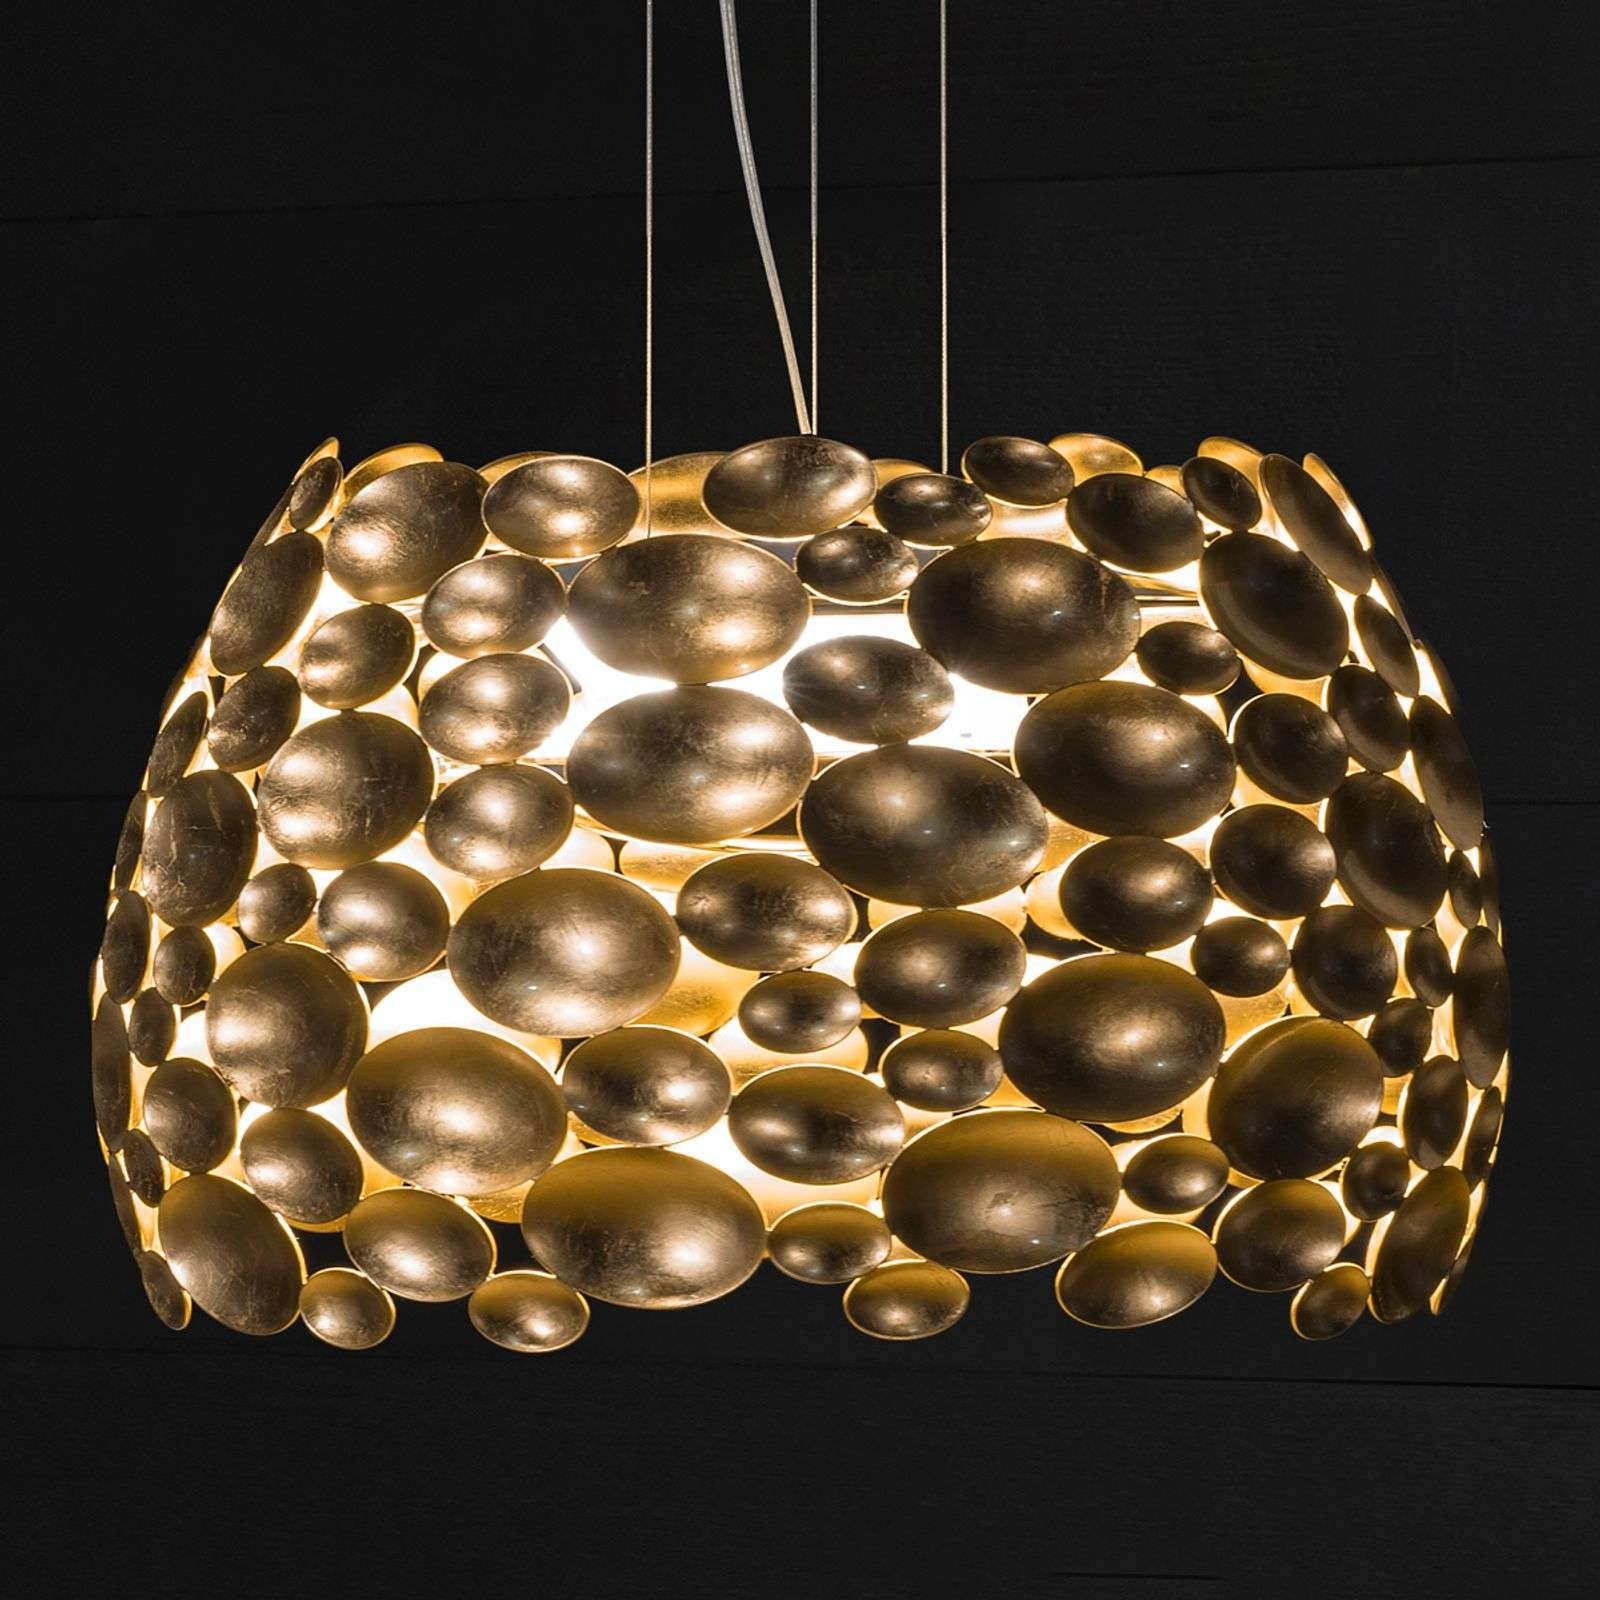 Suspension LED dorée Anish - Ø 44 cm